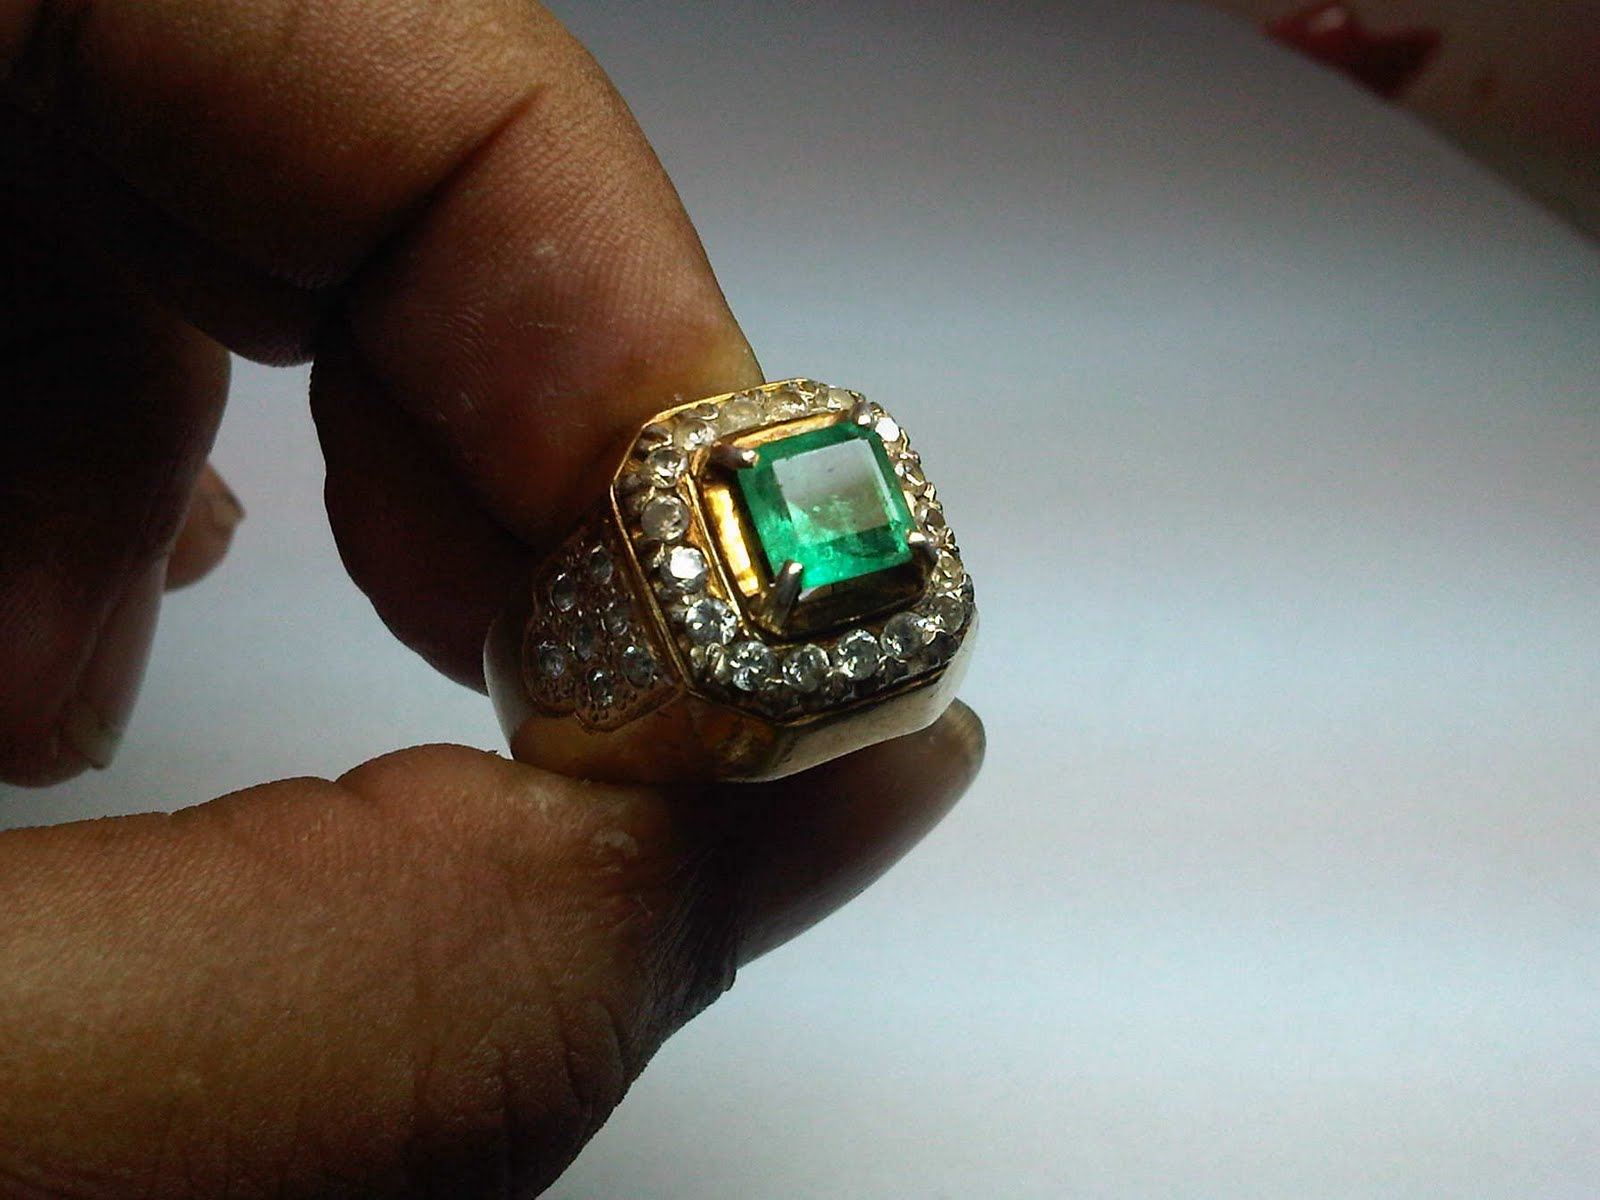 Batumuliadoeloe Natural Emerald Jamrud Origin Columbia